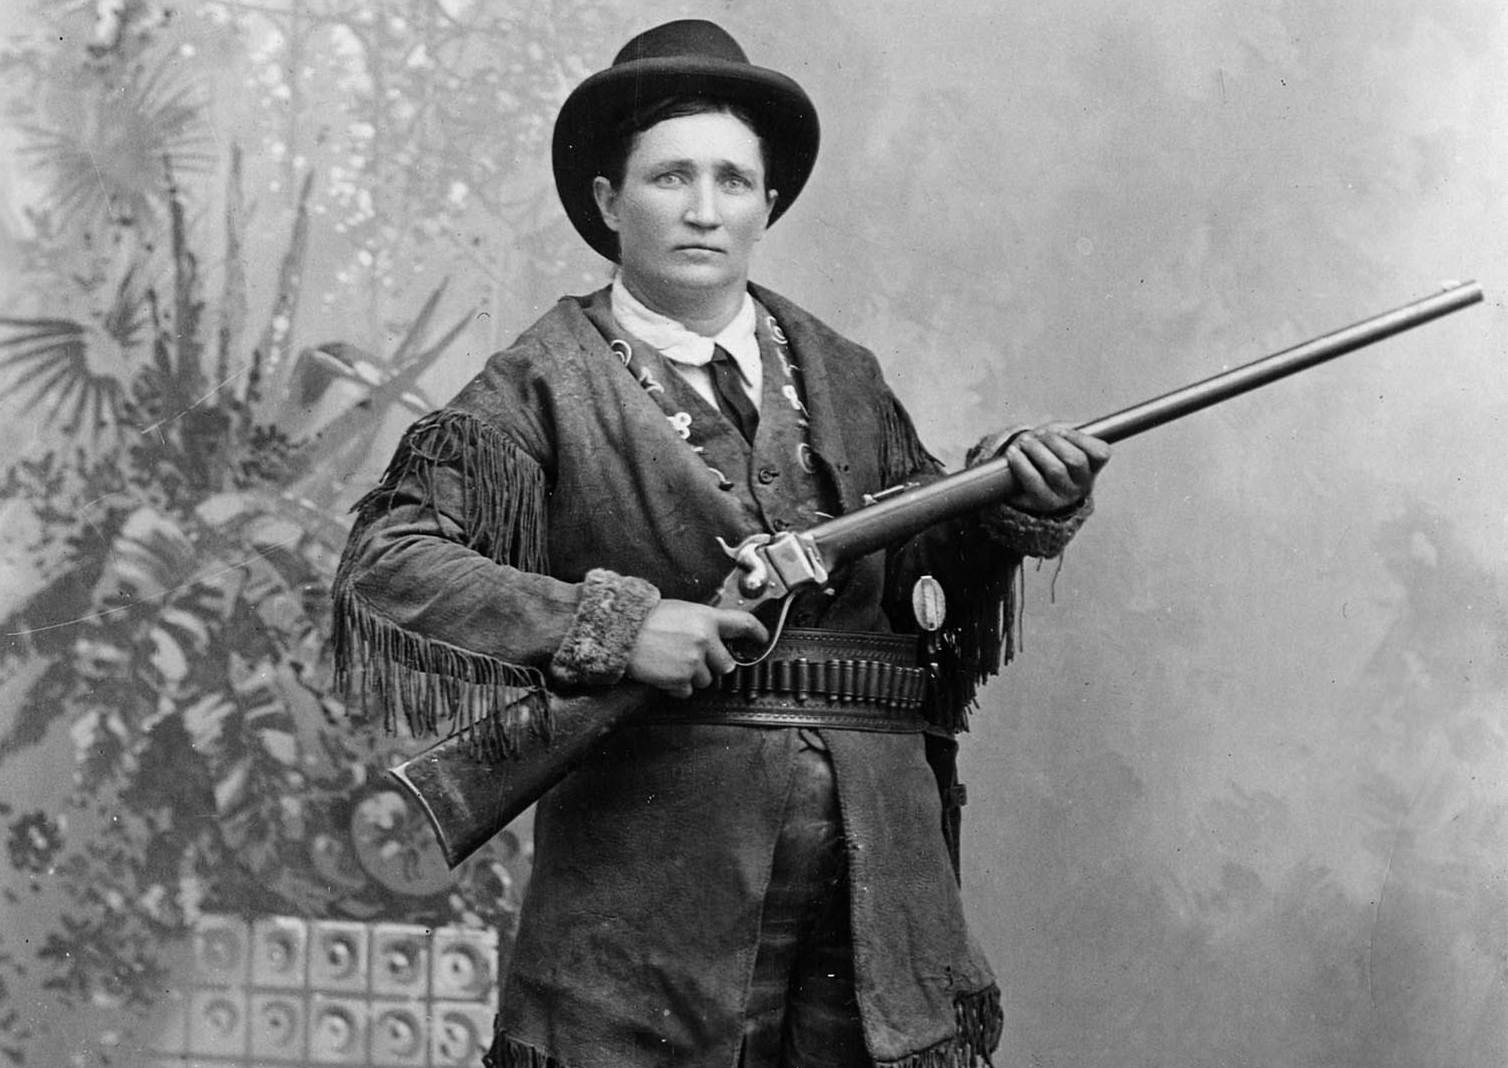 Calamity Jane facts